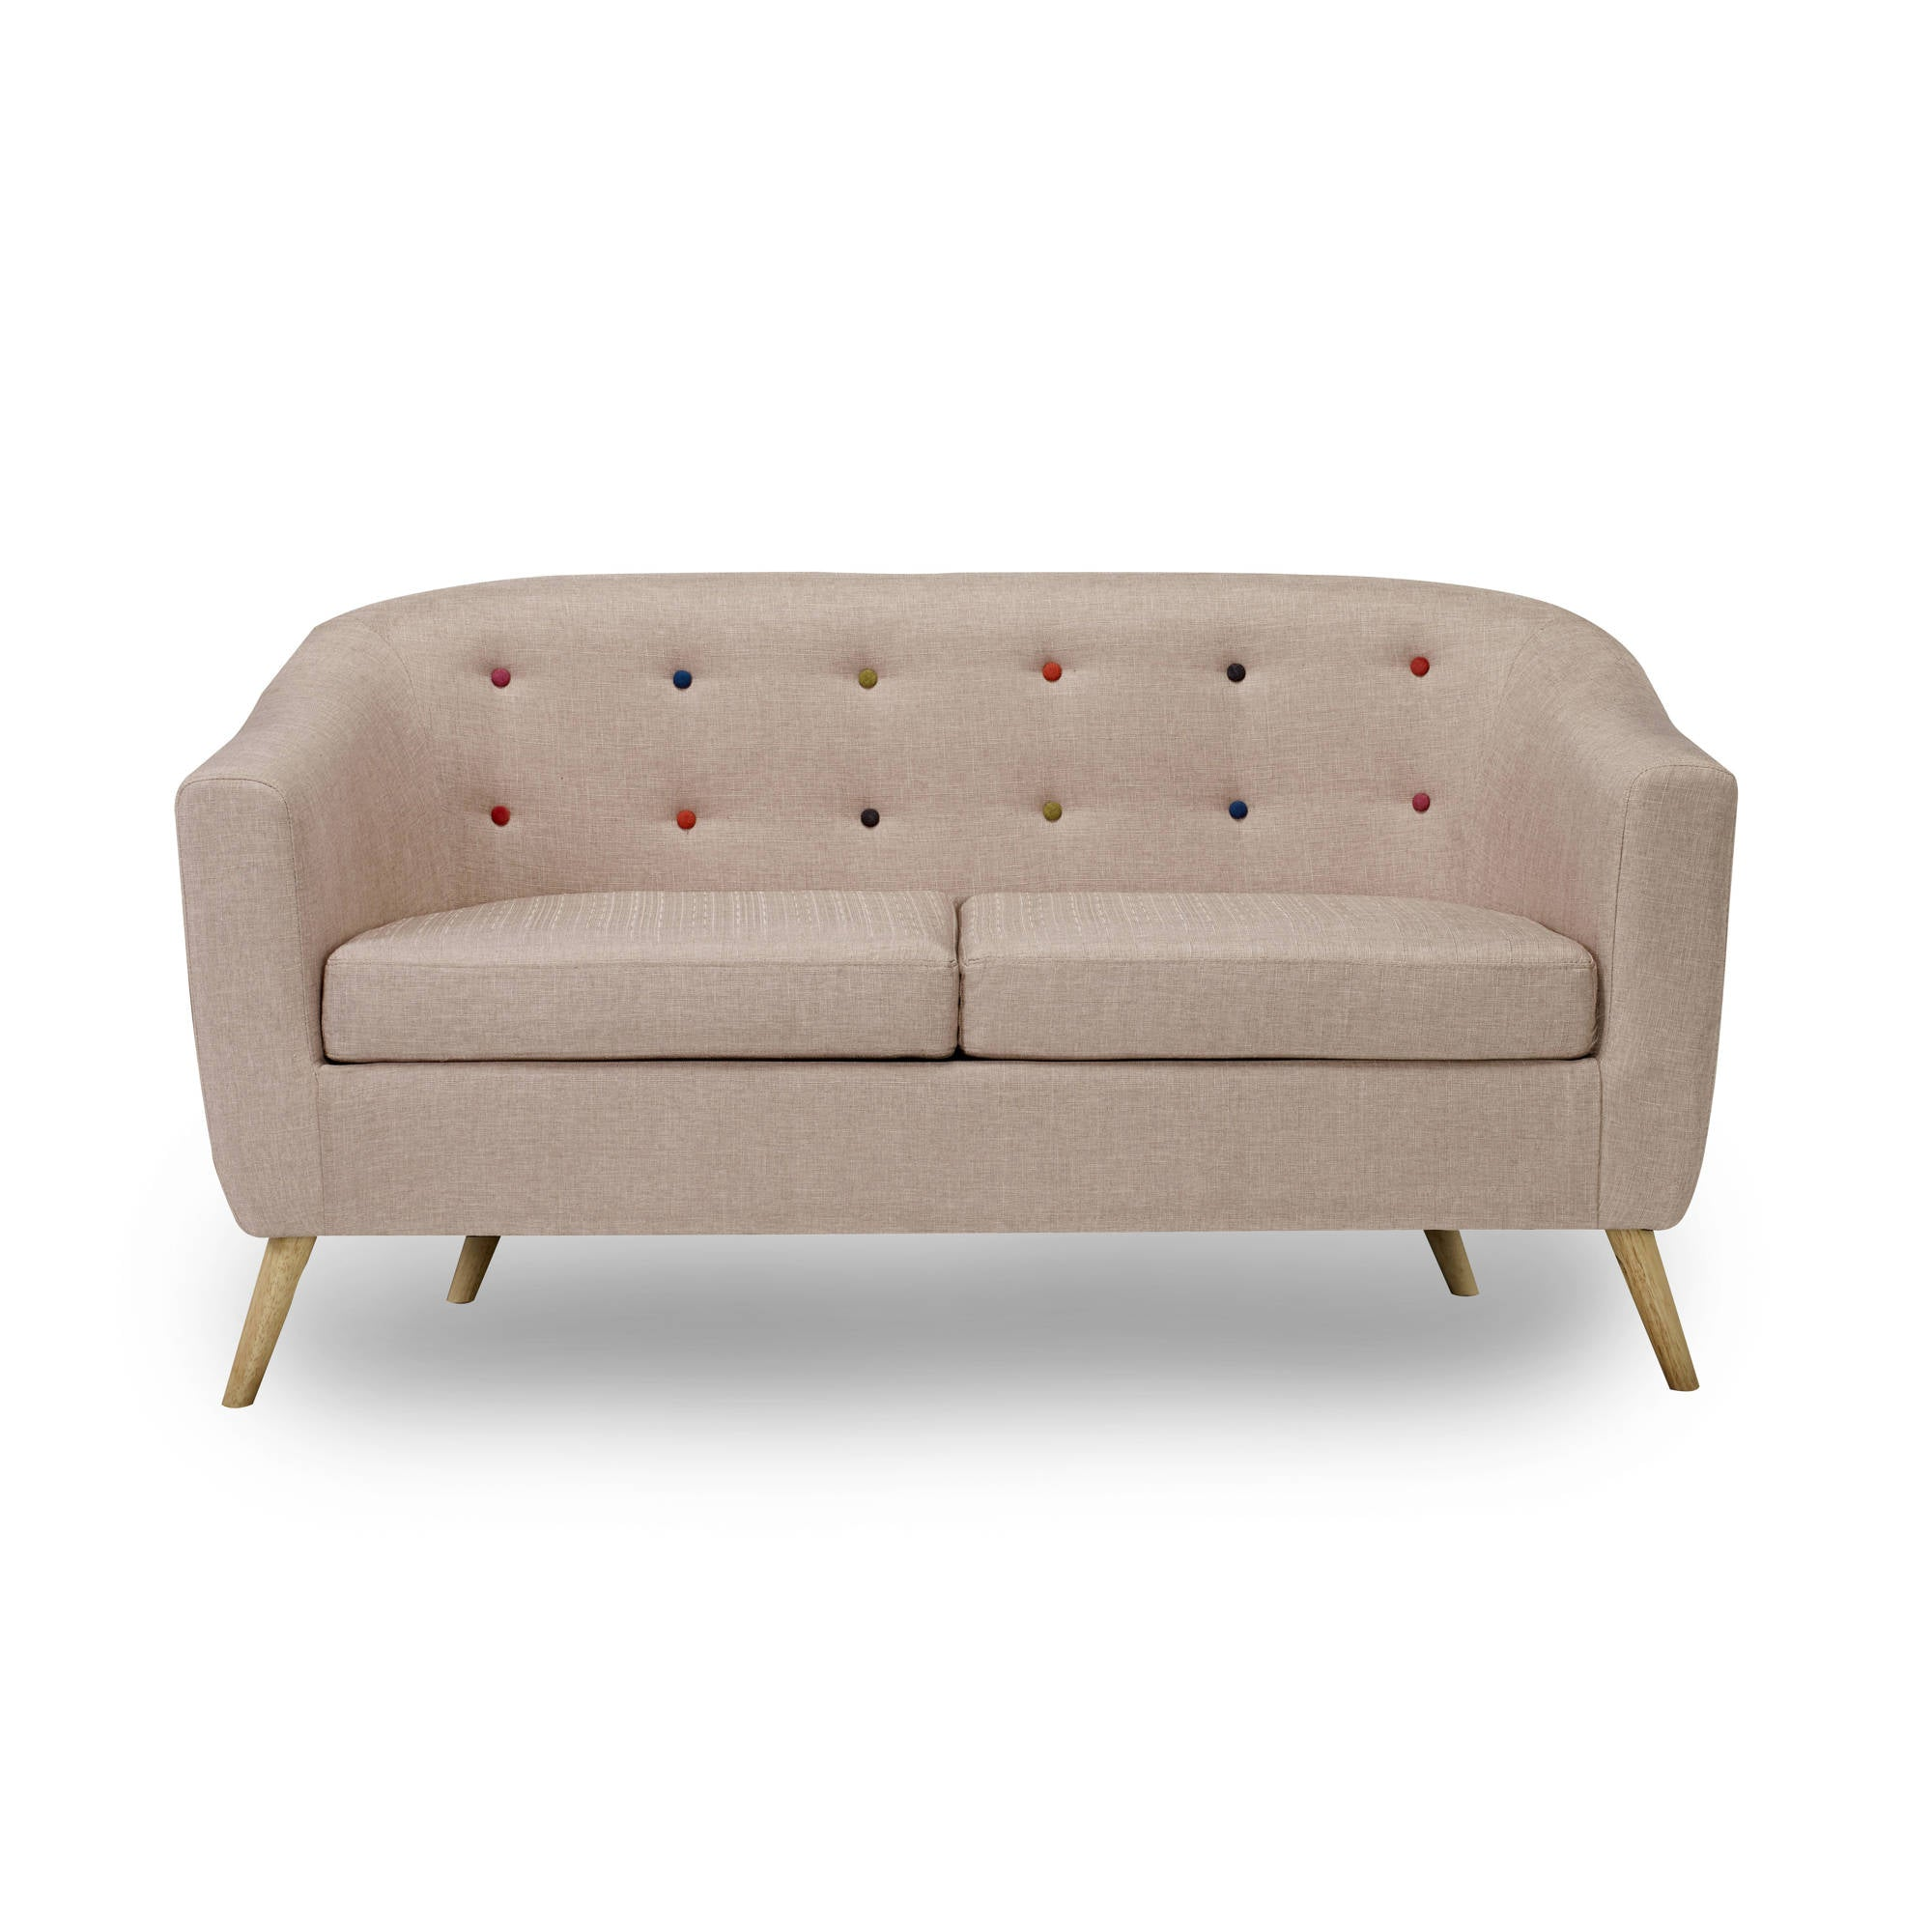 Newburgh Sofa in Beige - Ezzo